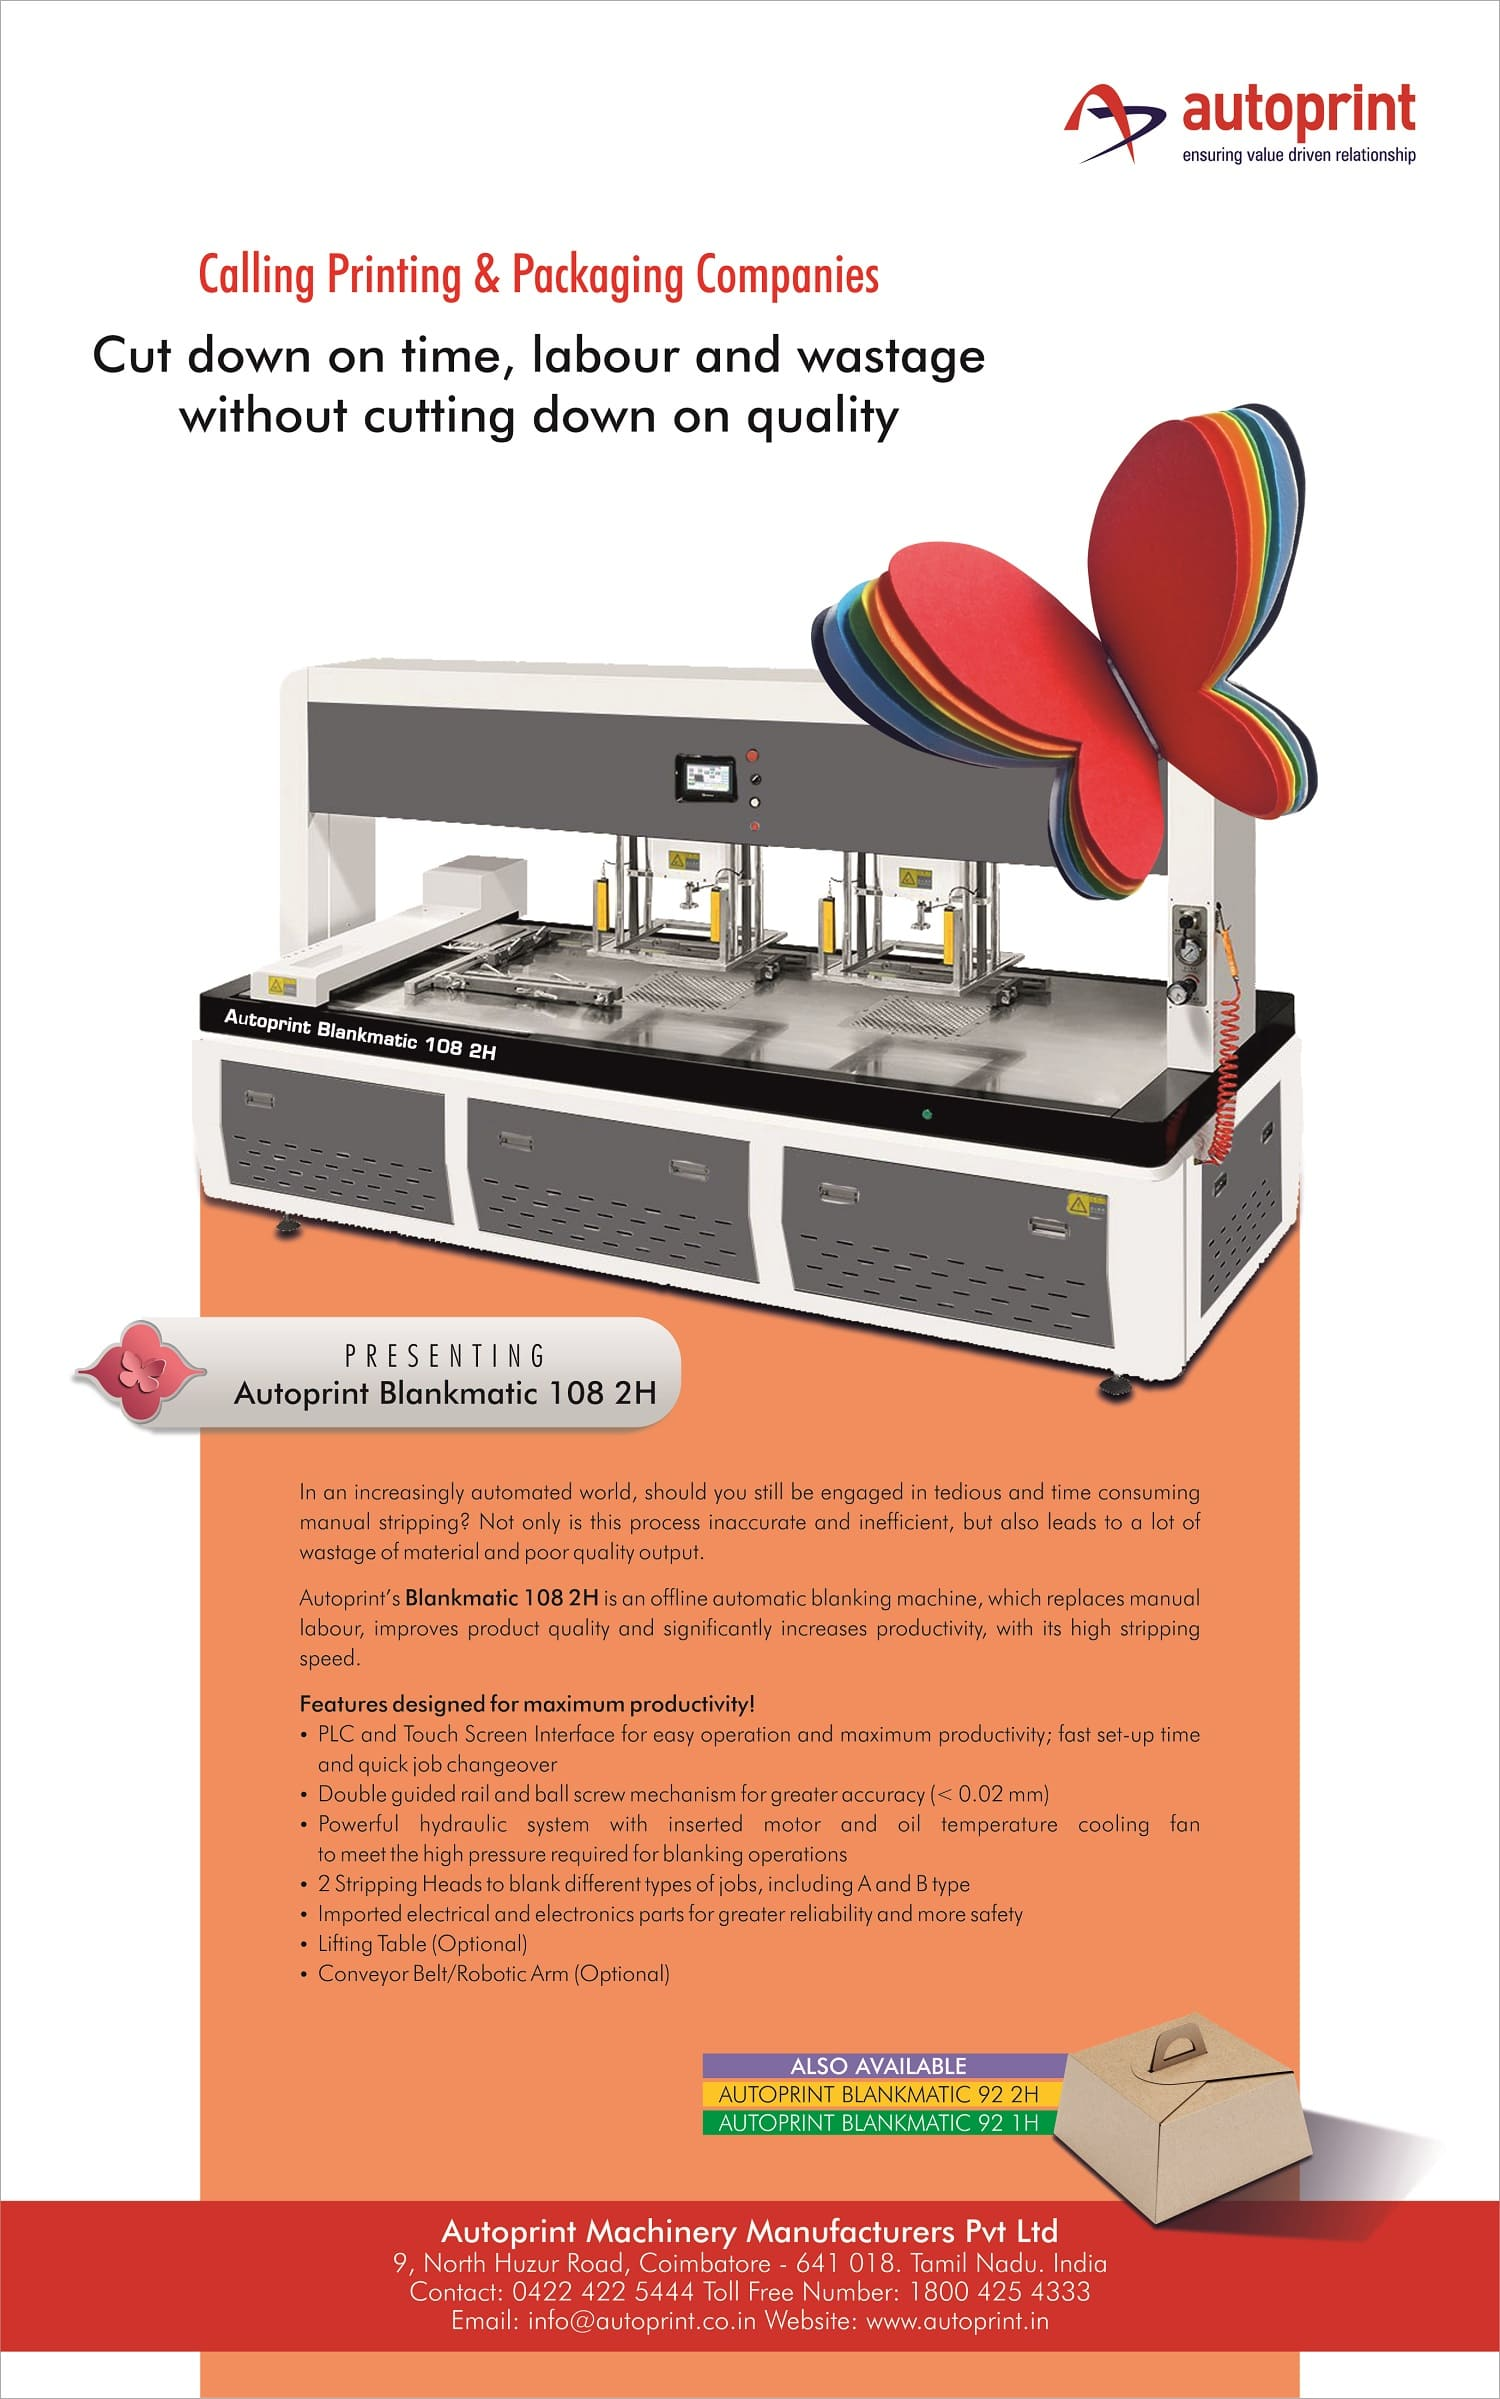 Web Offset And Sheetfed Printechno Solutions Printing Diagram Press Eagle Single Double Four Five Colour Presses Sizes 18x25 18x28 20x30 22x32